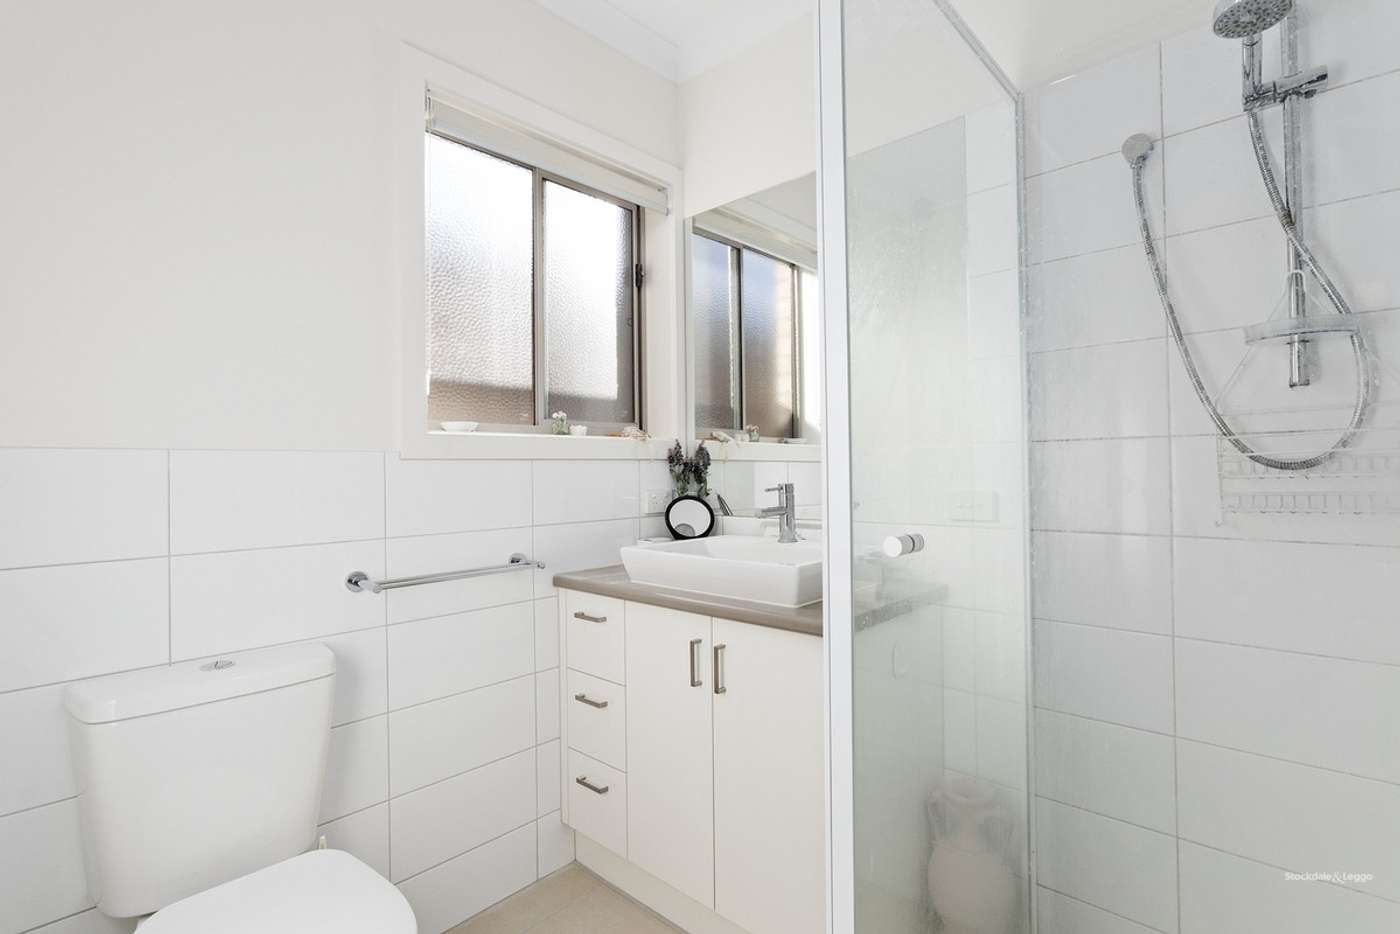 Sixth view of Homely house listing, 4/45 Clifton Springs Road, Drysdale VIC 3222